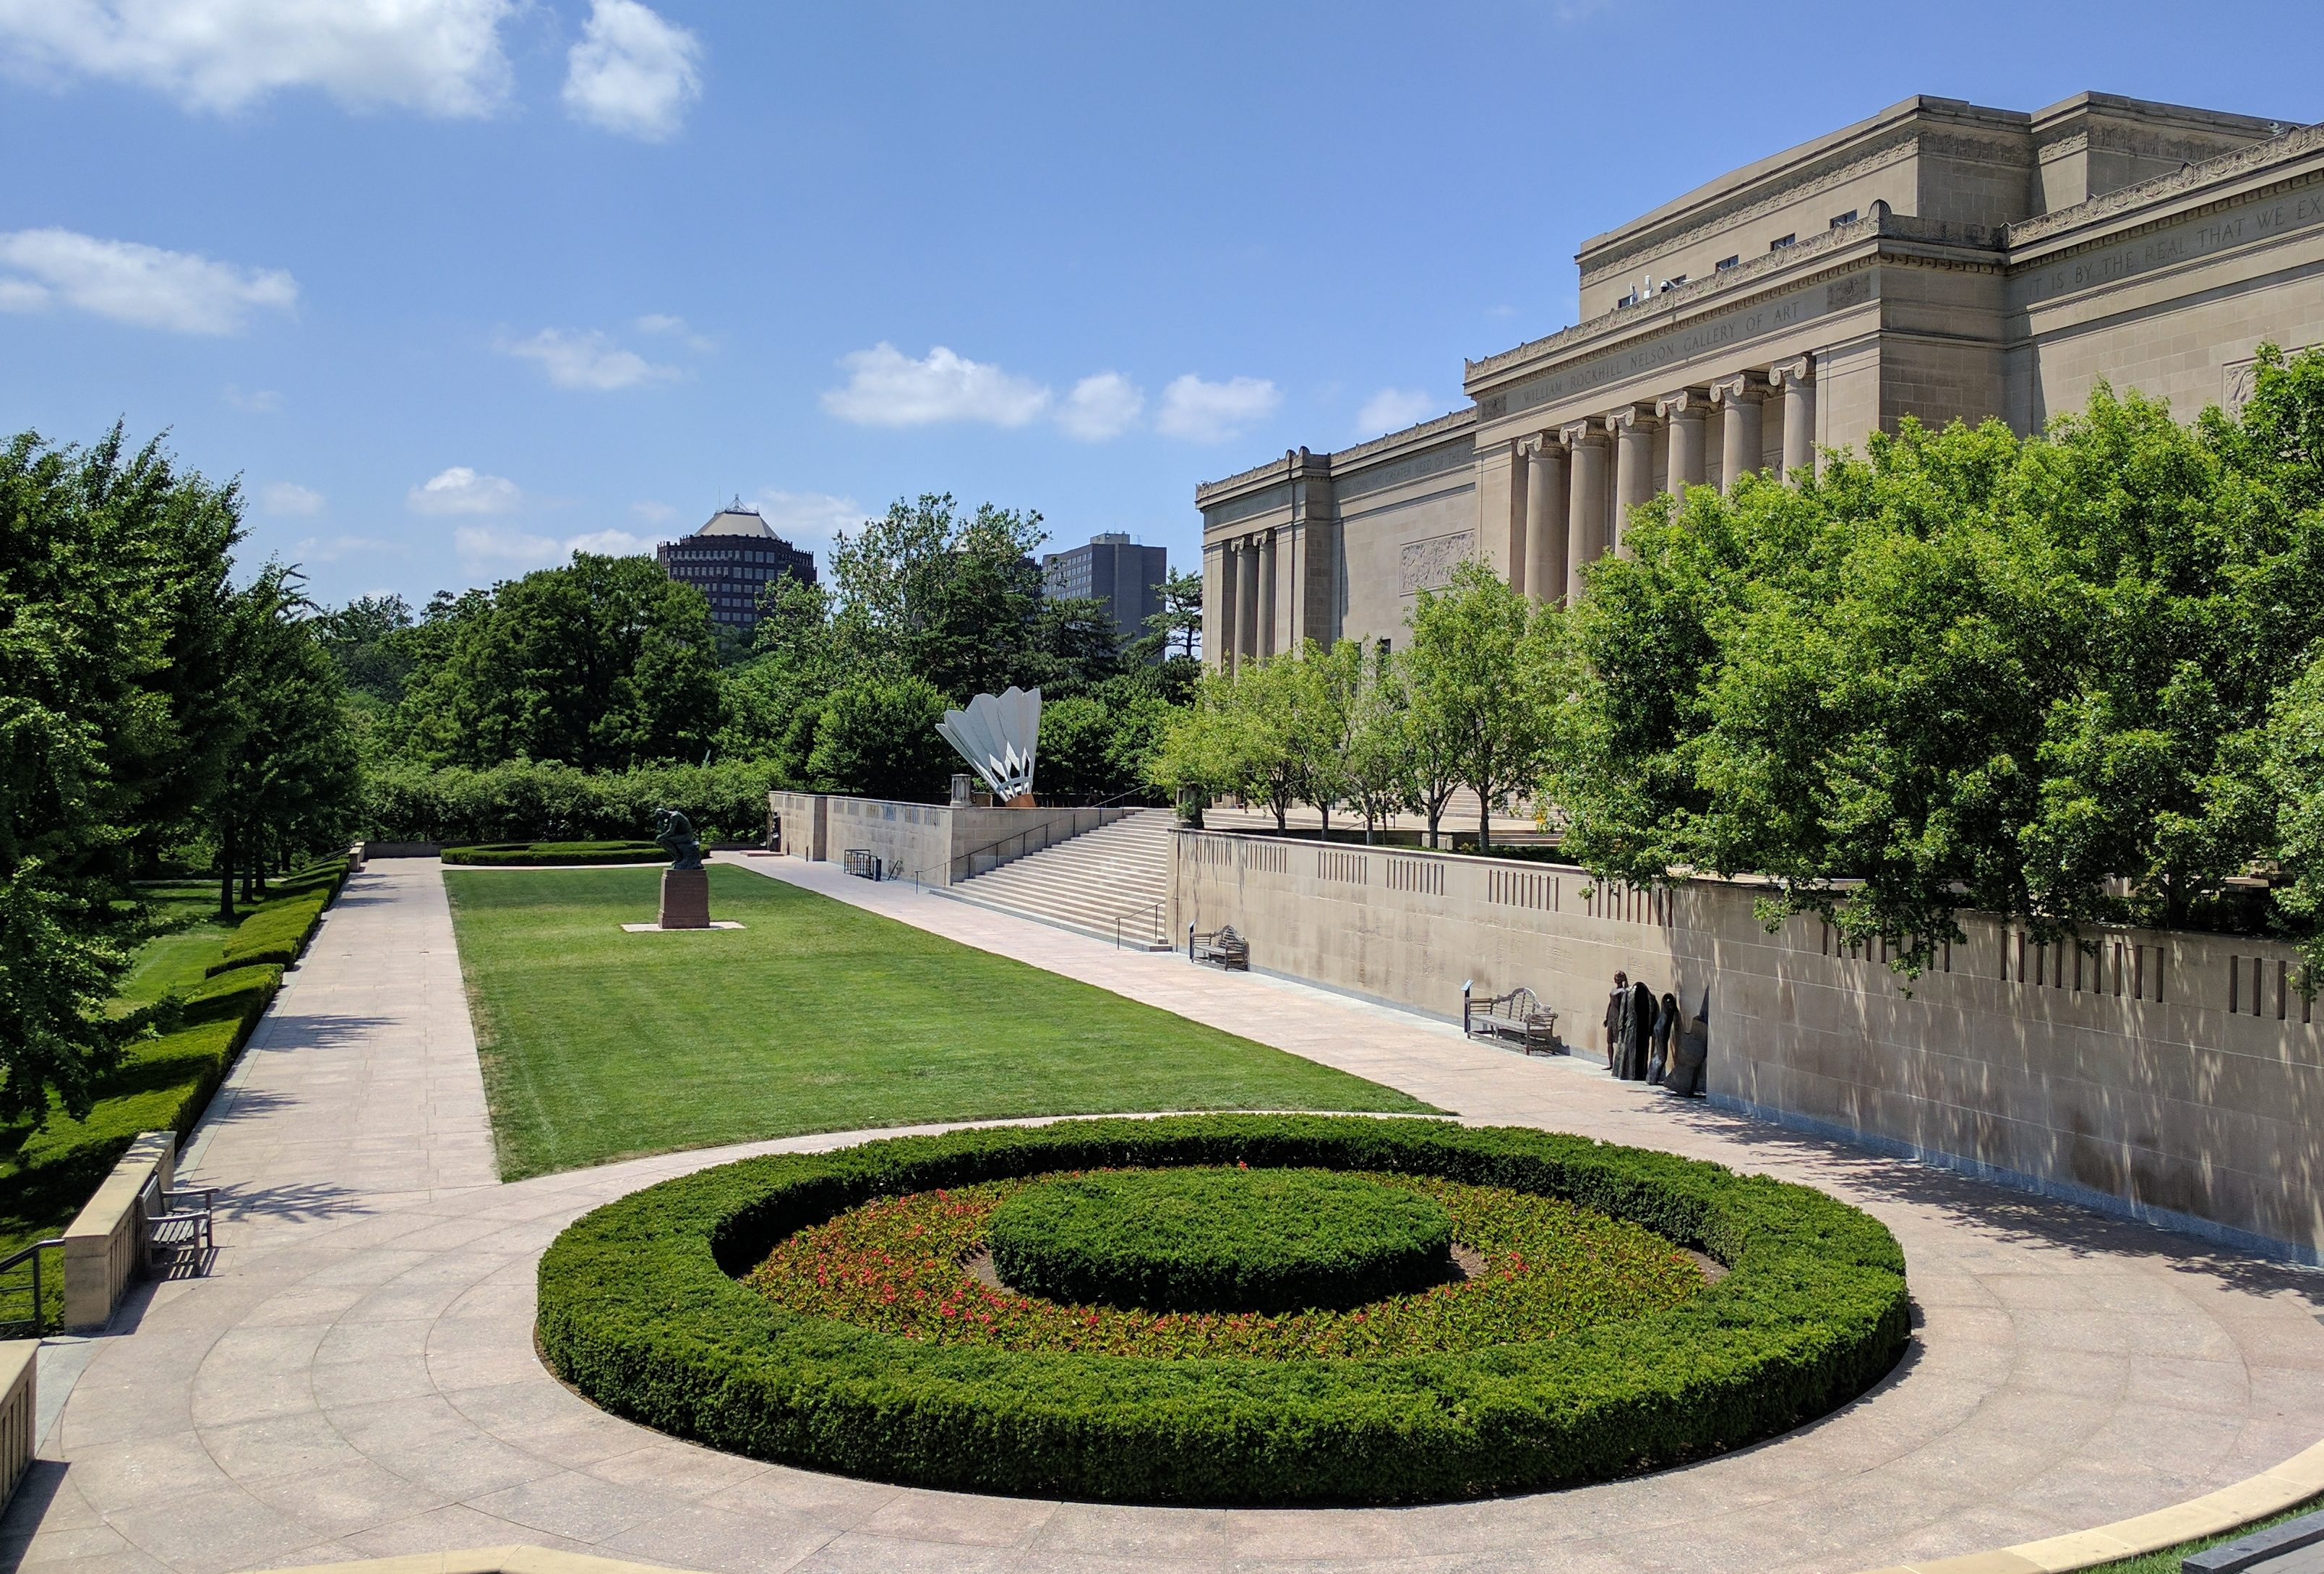 The Nelson-Atkins Museum of Art. Foto met dank aan Wikimedia Commons, TheGridExe, CC BY-SA 4.0